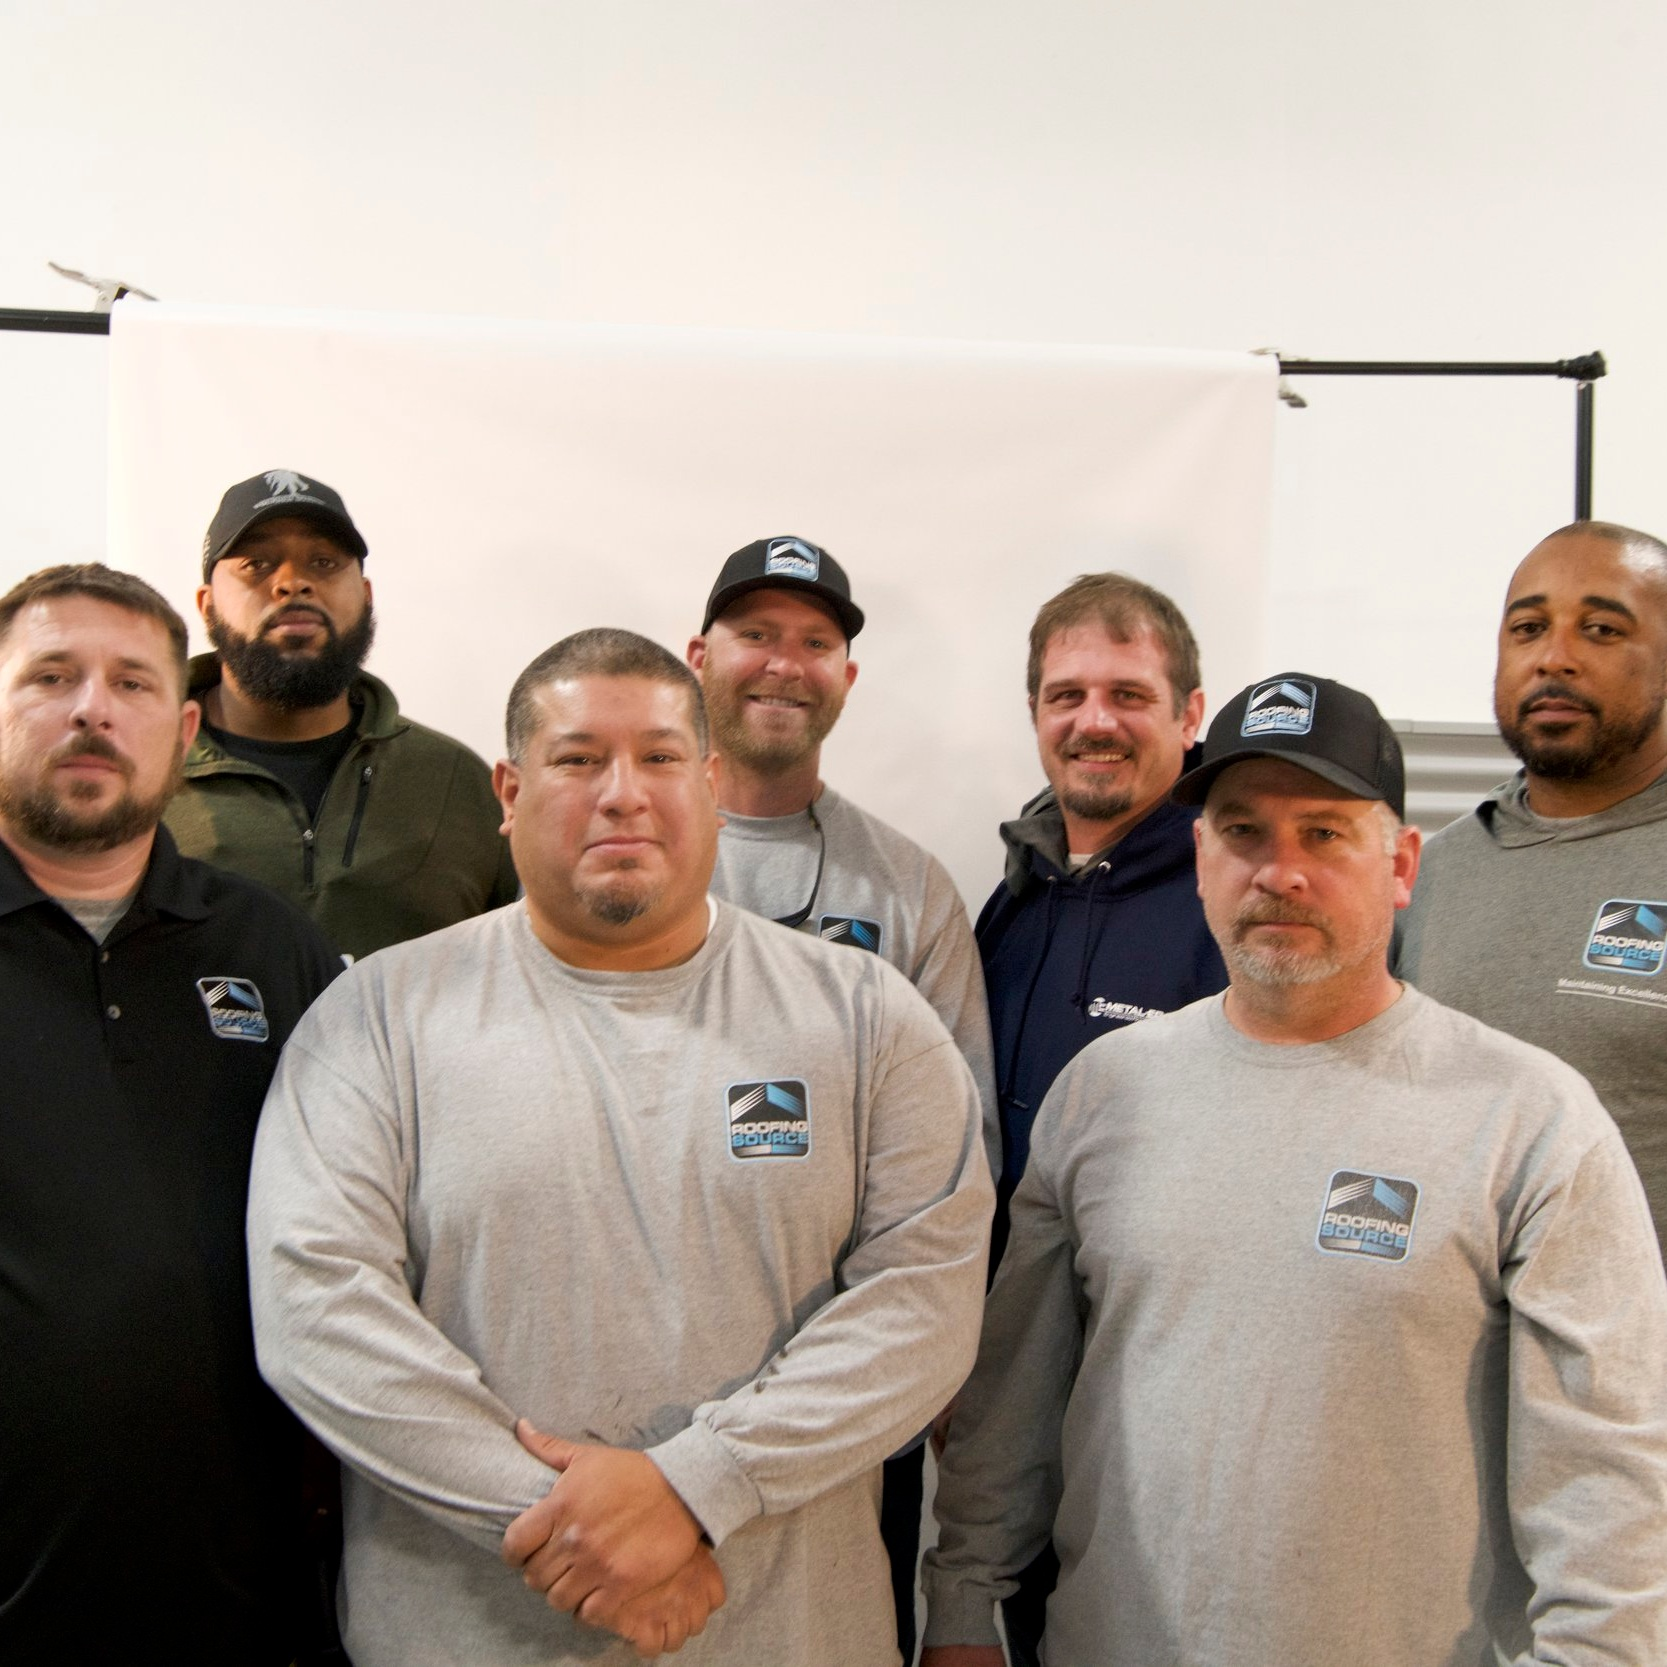 Veterans at RoofingSource